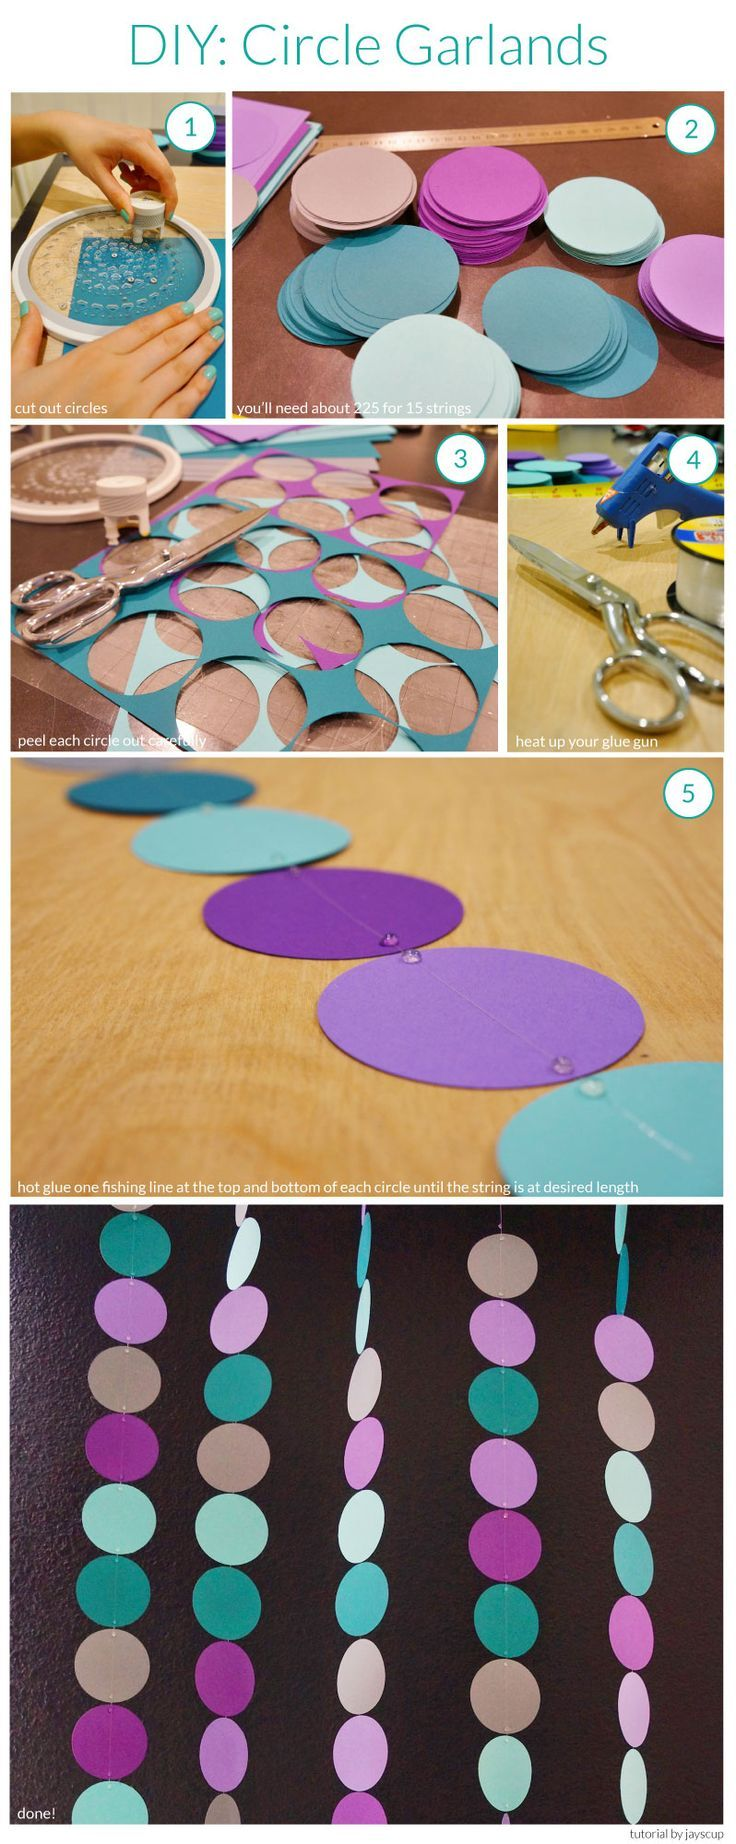 Circle garland DIY. This would also be a good idea for drapery behind dining table!  We could incorporate all the colors of baby's bedding into this.